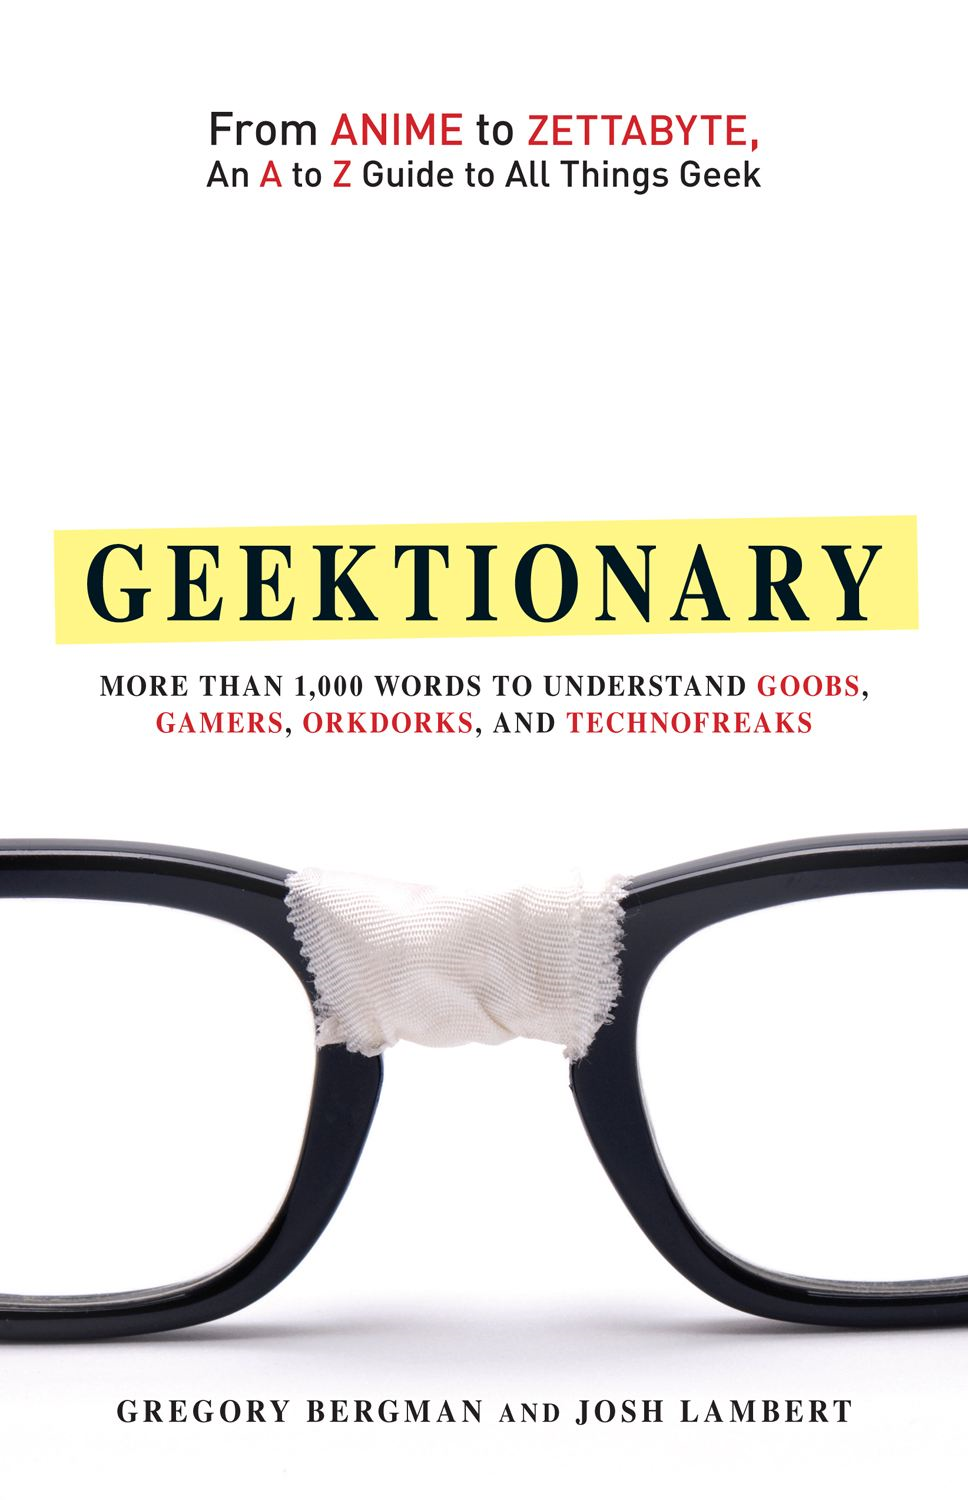 Geektionary: From Anime to Zettabyte, An A to Z Guide to All Things Geek By: Gregory Bergman,Josh Lambert